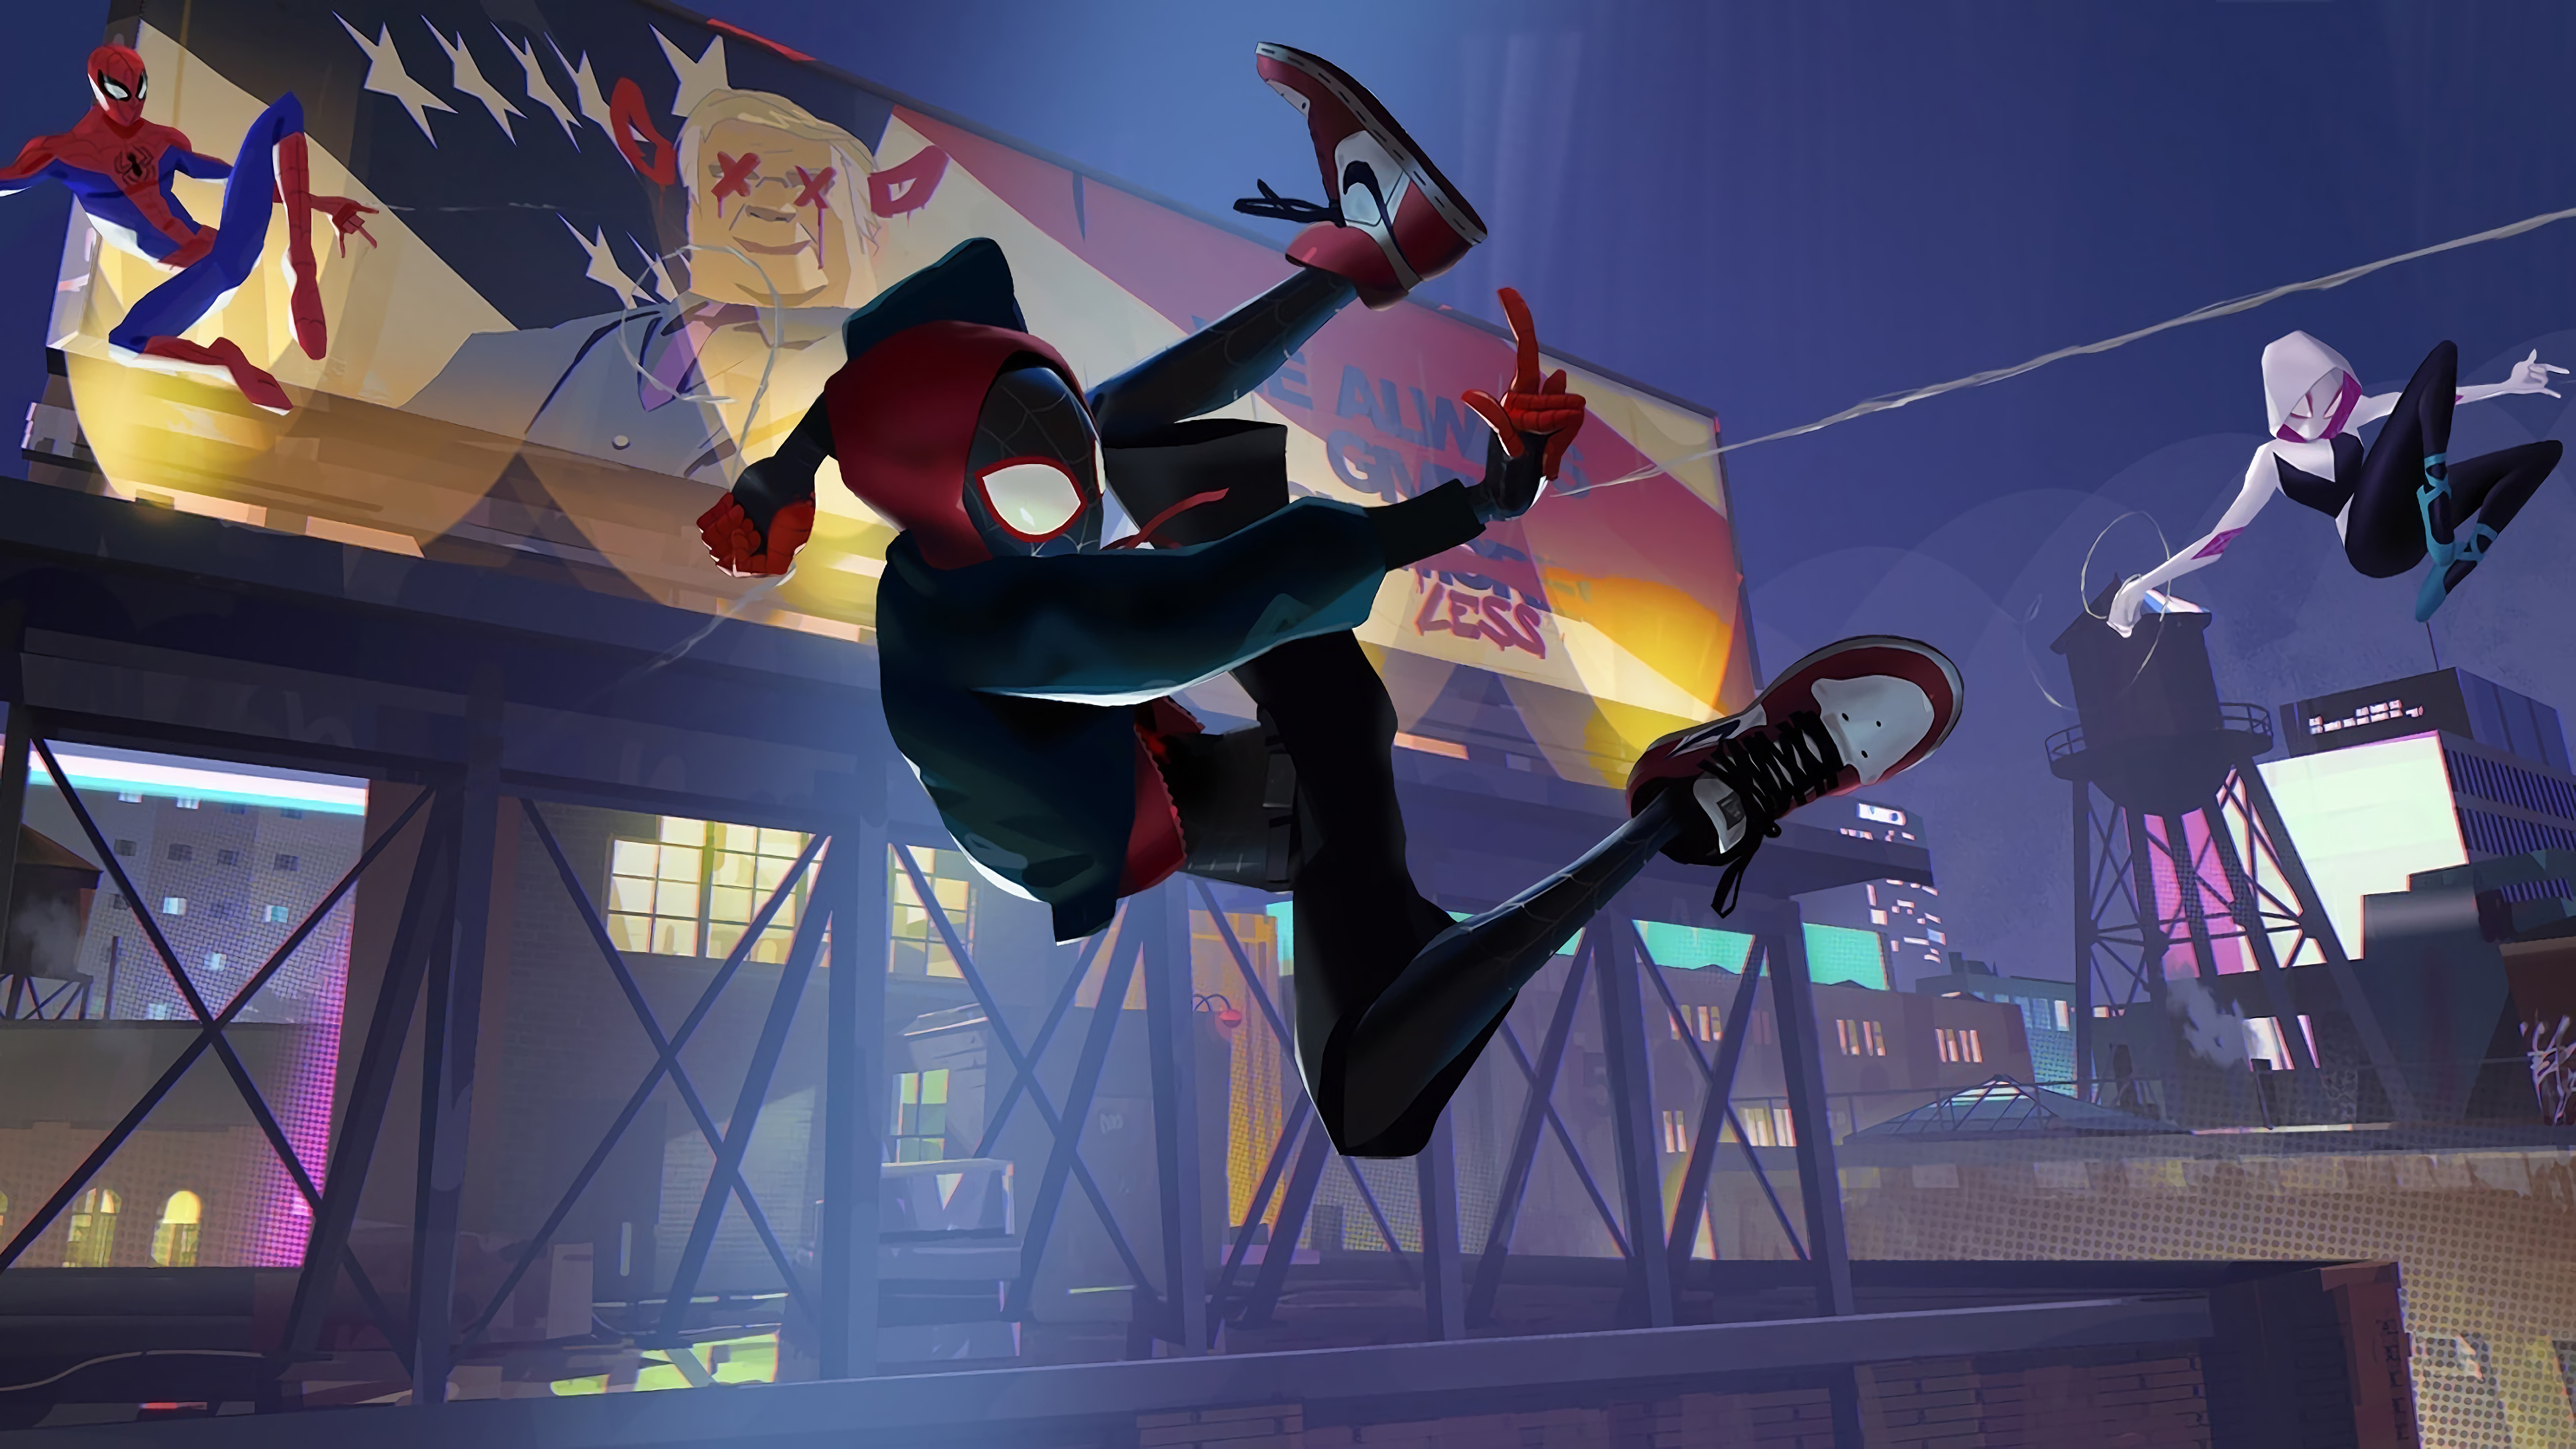 peter parker spiderman into the spider verse 4k 1545589854 - Peter Parker Spiderman Into The Spider Verse 4k - spiderman wallpapers, spiderman into the spider verse wallpapers, movies wallpapers, hd-wallpapers, animated movies wallpapers, 4k-wallpapers, 2018-movies-wallpapers